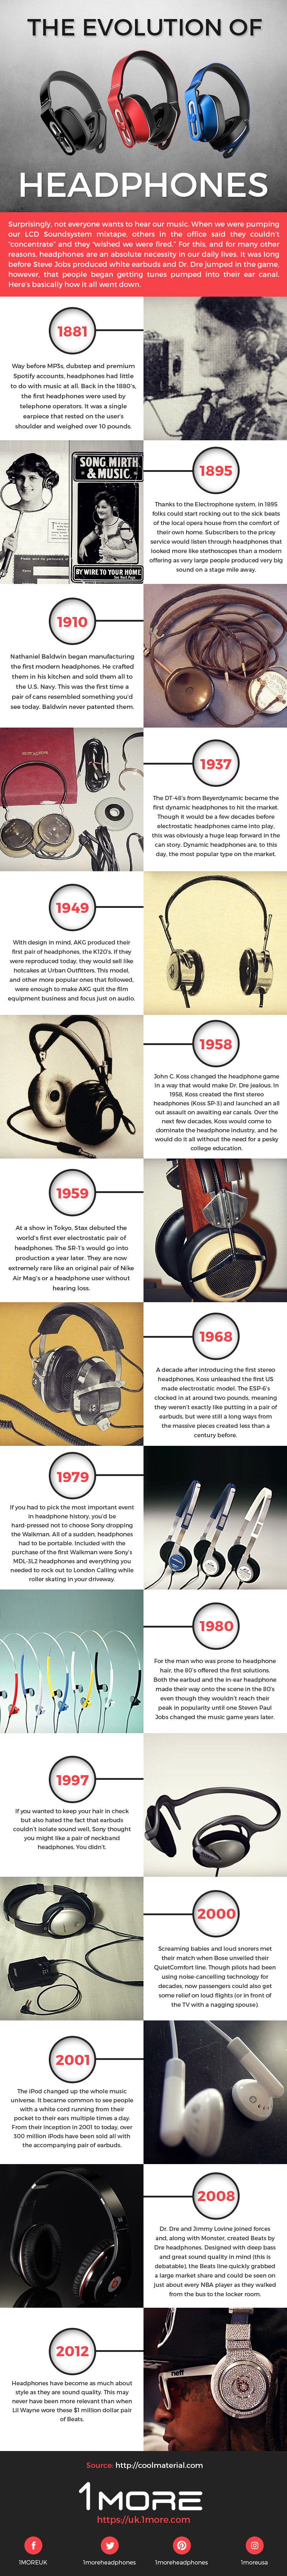 The Evolution of Headphones